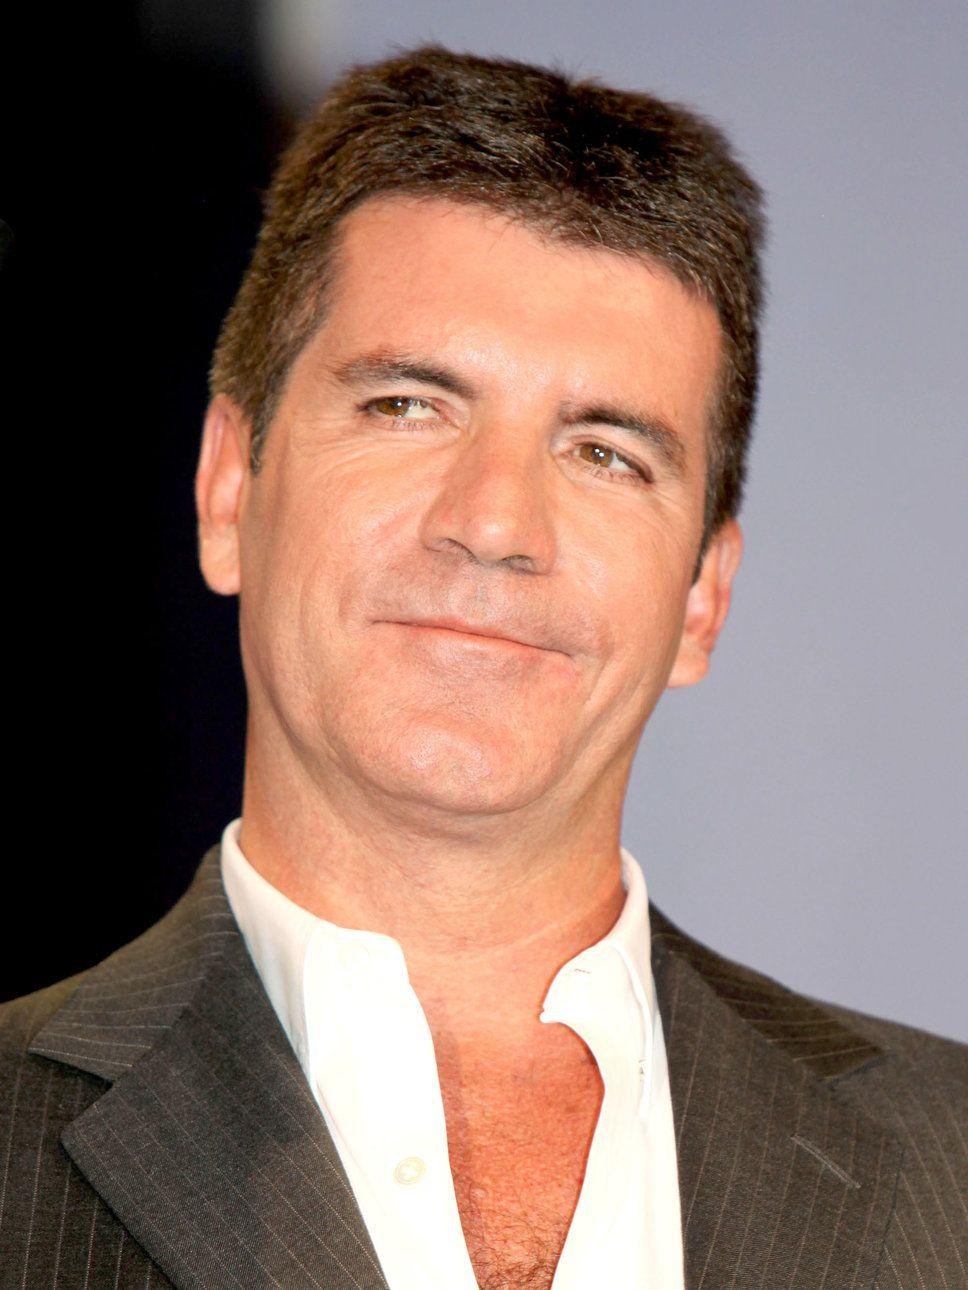 HD Simon Cowell Wallpapers and Photos